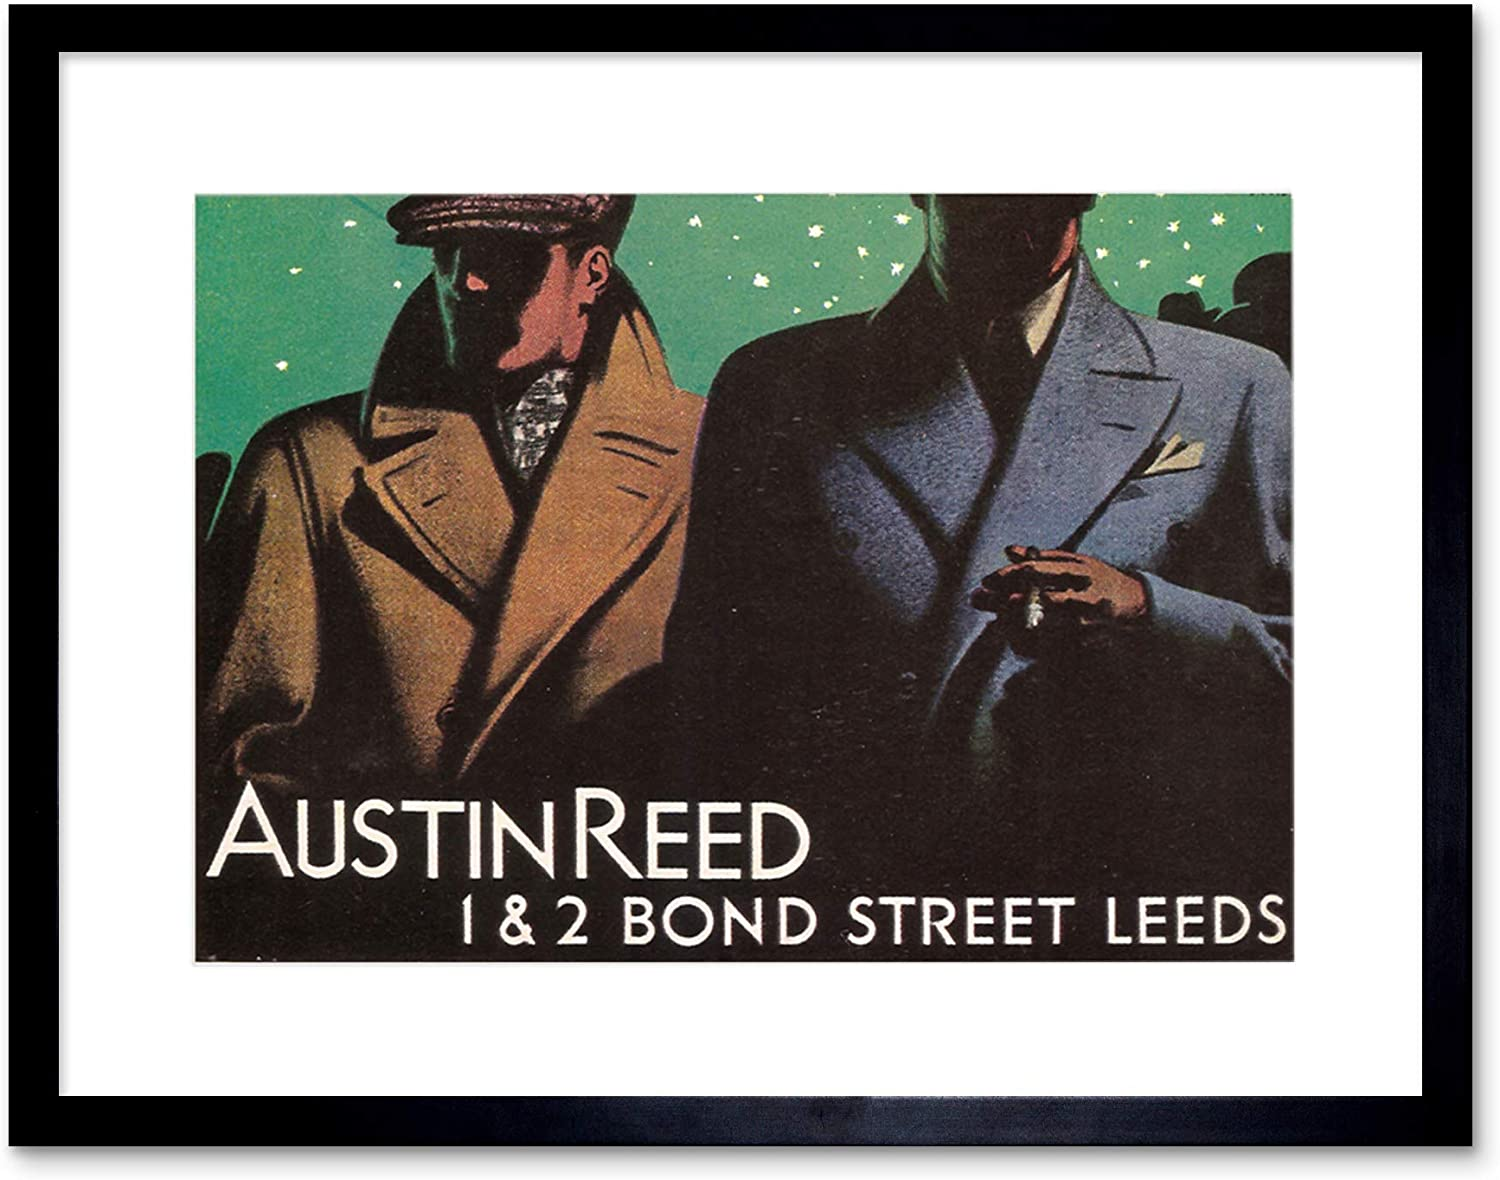 Wee Blue Coo Ad Austin Reed Bond Street Leeds Yorkshire Framed Wall Art Print Amazon Co Uk Kitchen Home